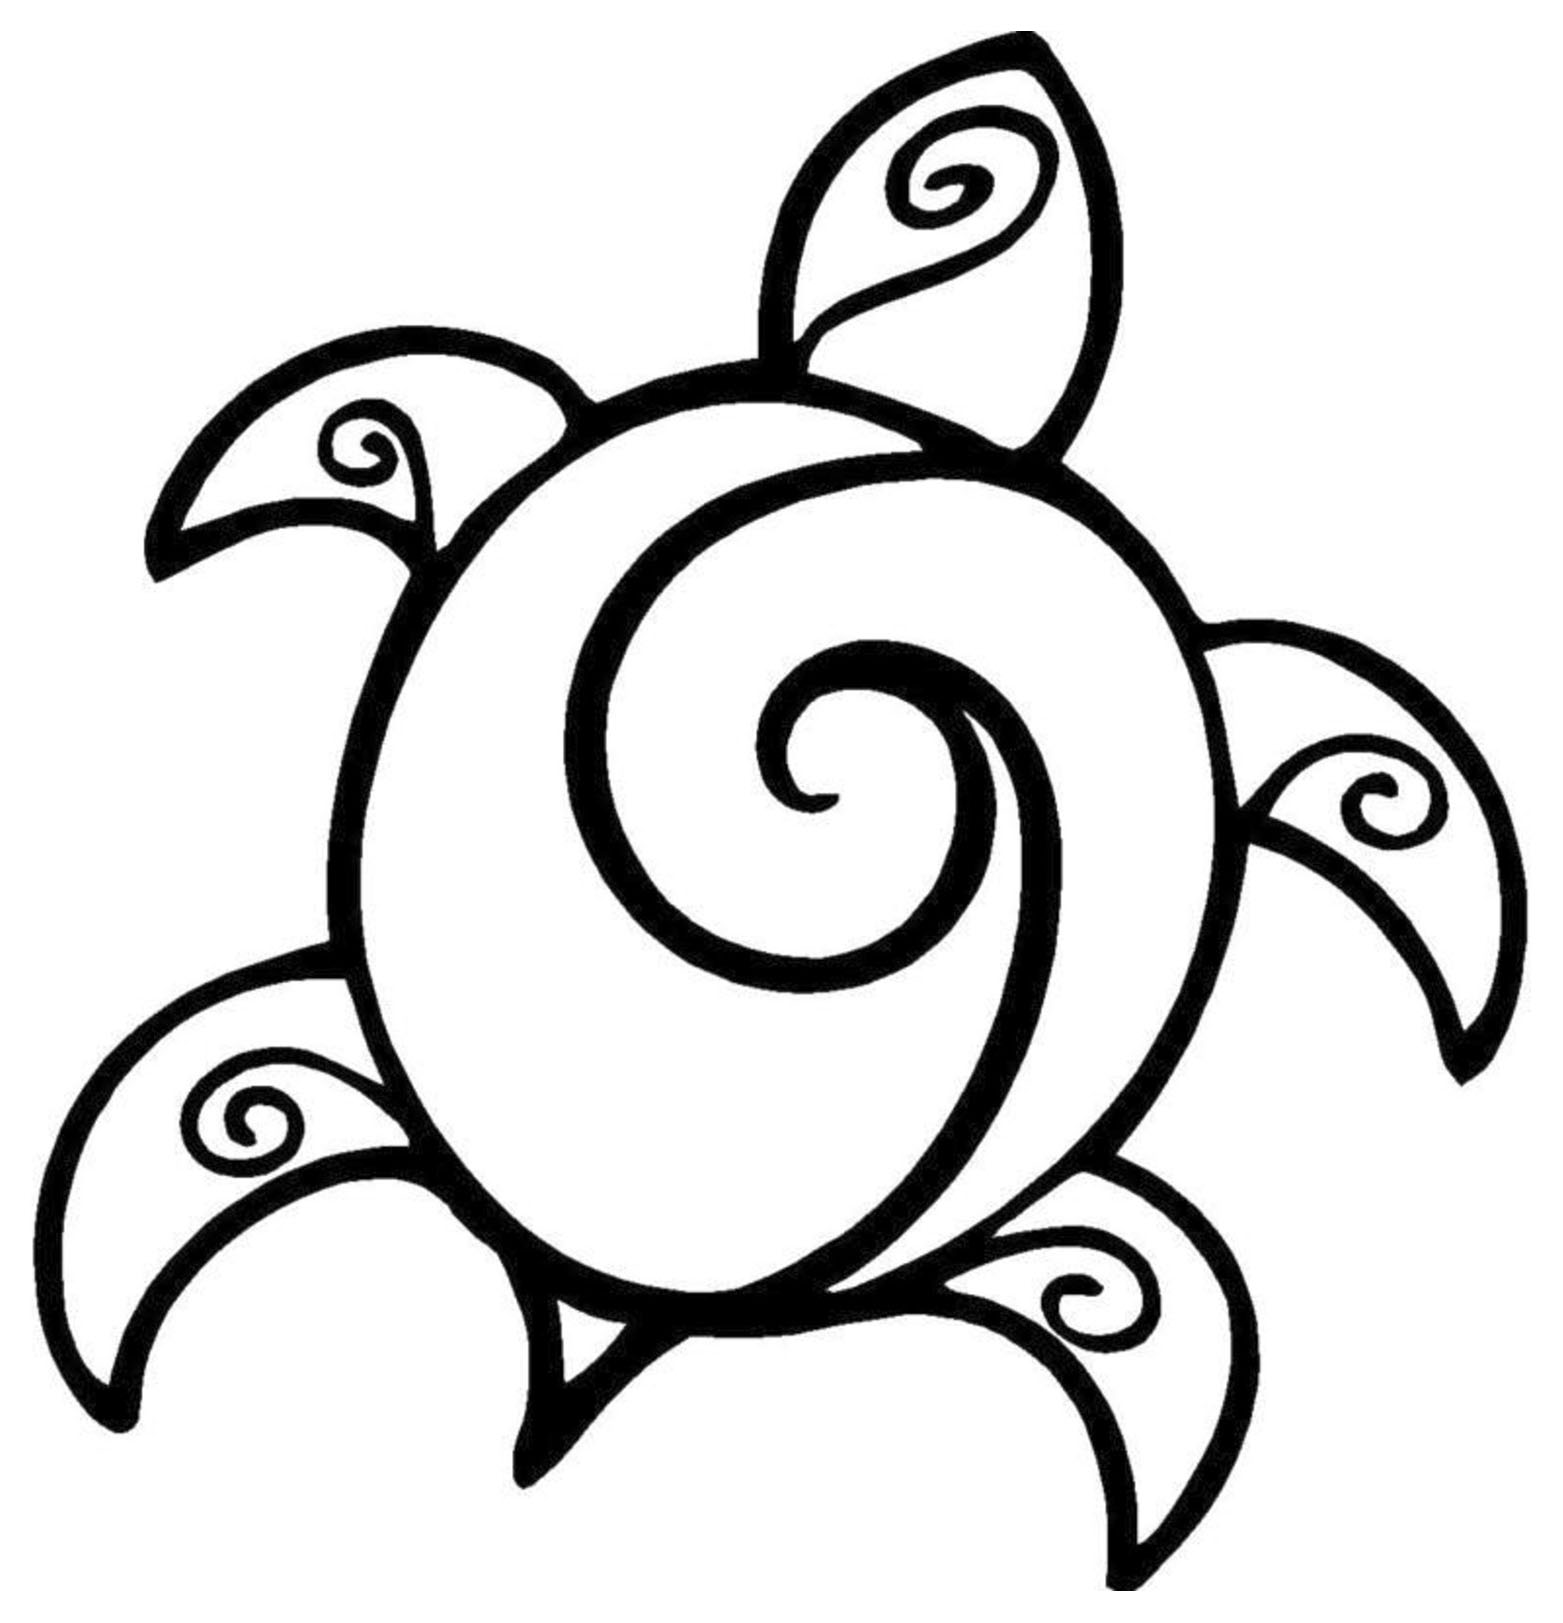 turtle coloring pictures to print free easy to print turtle coloring pages in 2020 pictures print turtle to coloring